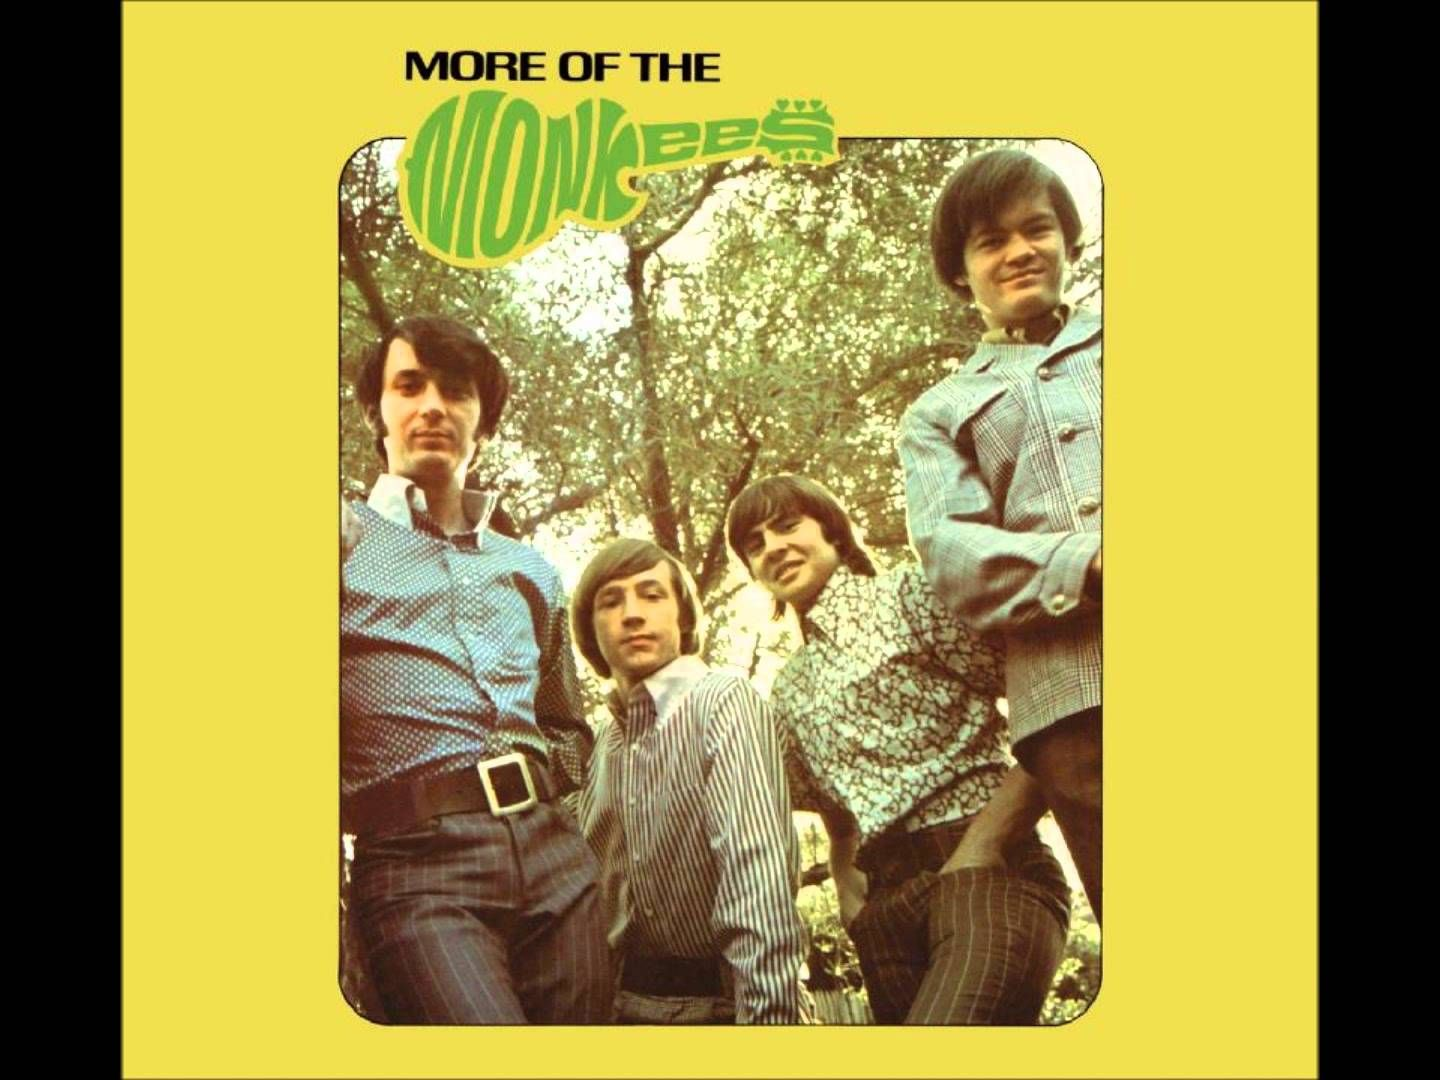 The Monkees -- More Of The Monkees (1967) Full Album | The monkees, Rock  album covers, Album covers